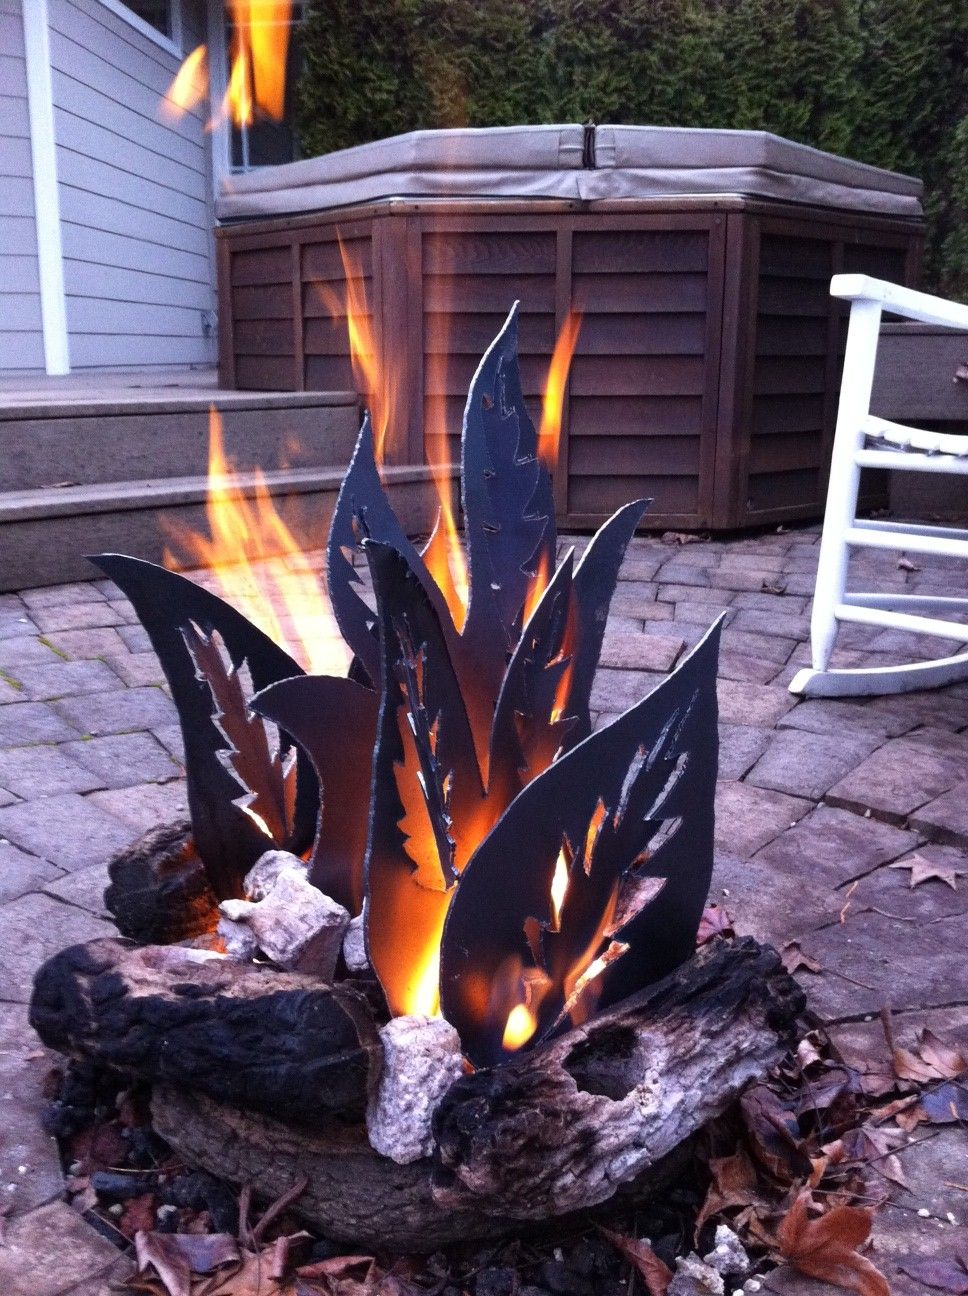 Backyard Fire Pit With Metal Design I Love This Holidayseason Southerncustom Welding Metalsculptures Custom Fire Pit Fire Pit Backyard Outdoor Fire Pit